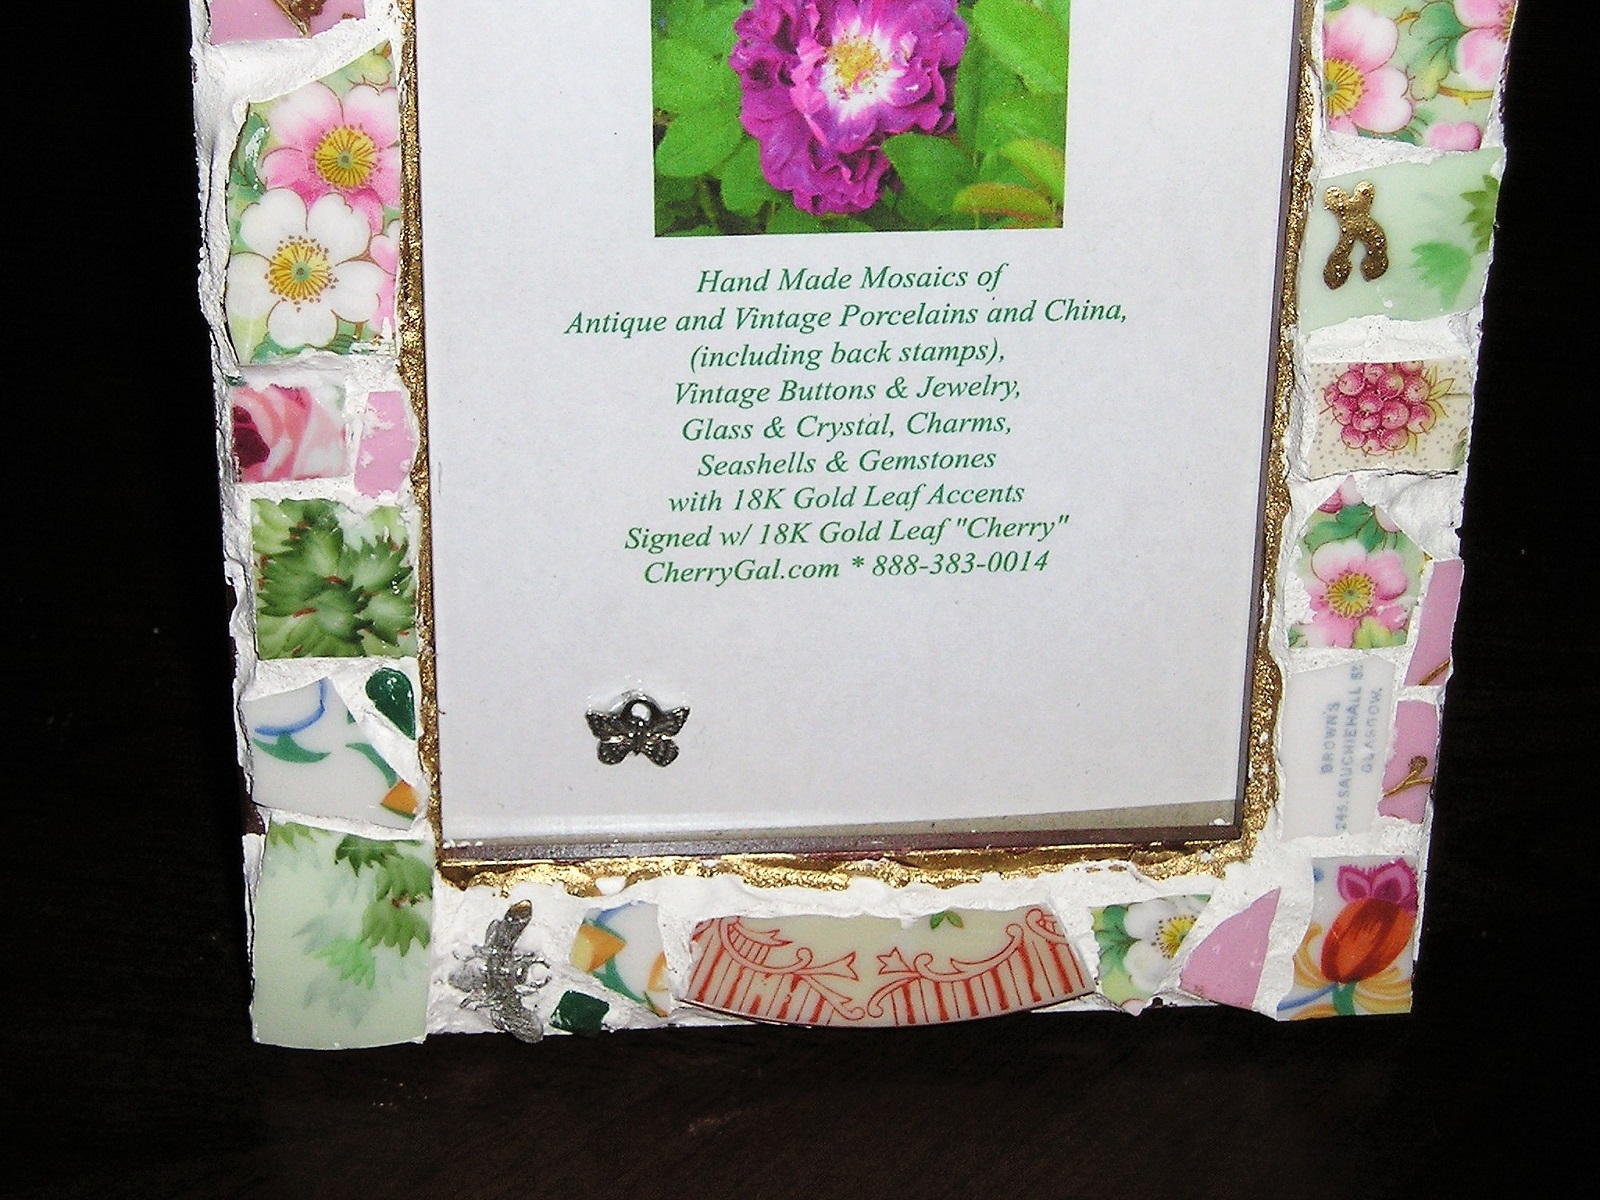 Fit Of Pique Genuine Pique Assiette Photo Frame 4 x 6 Pink Florals Escaped Butterfly